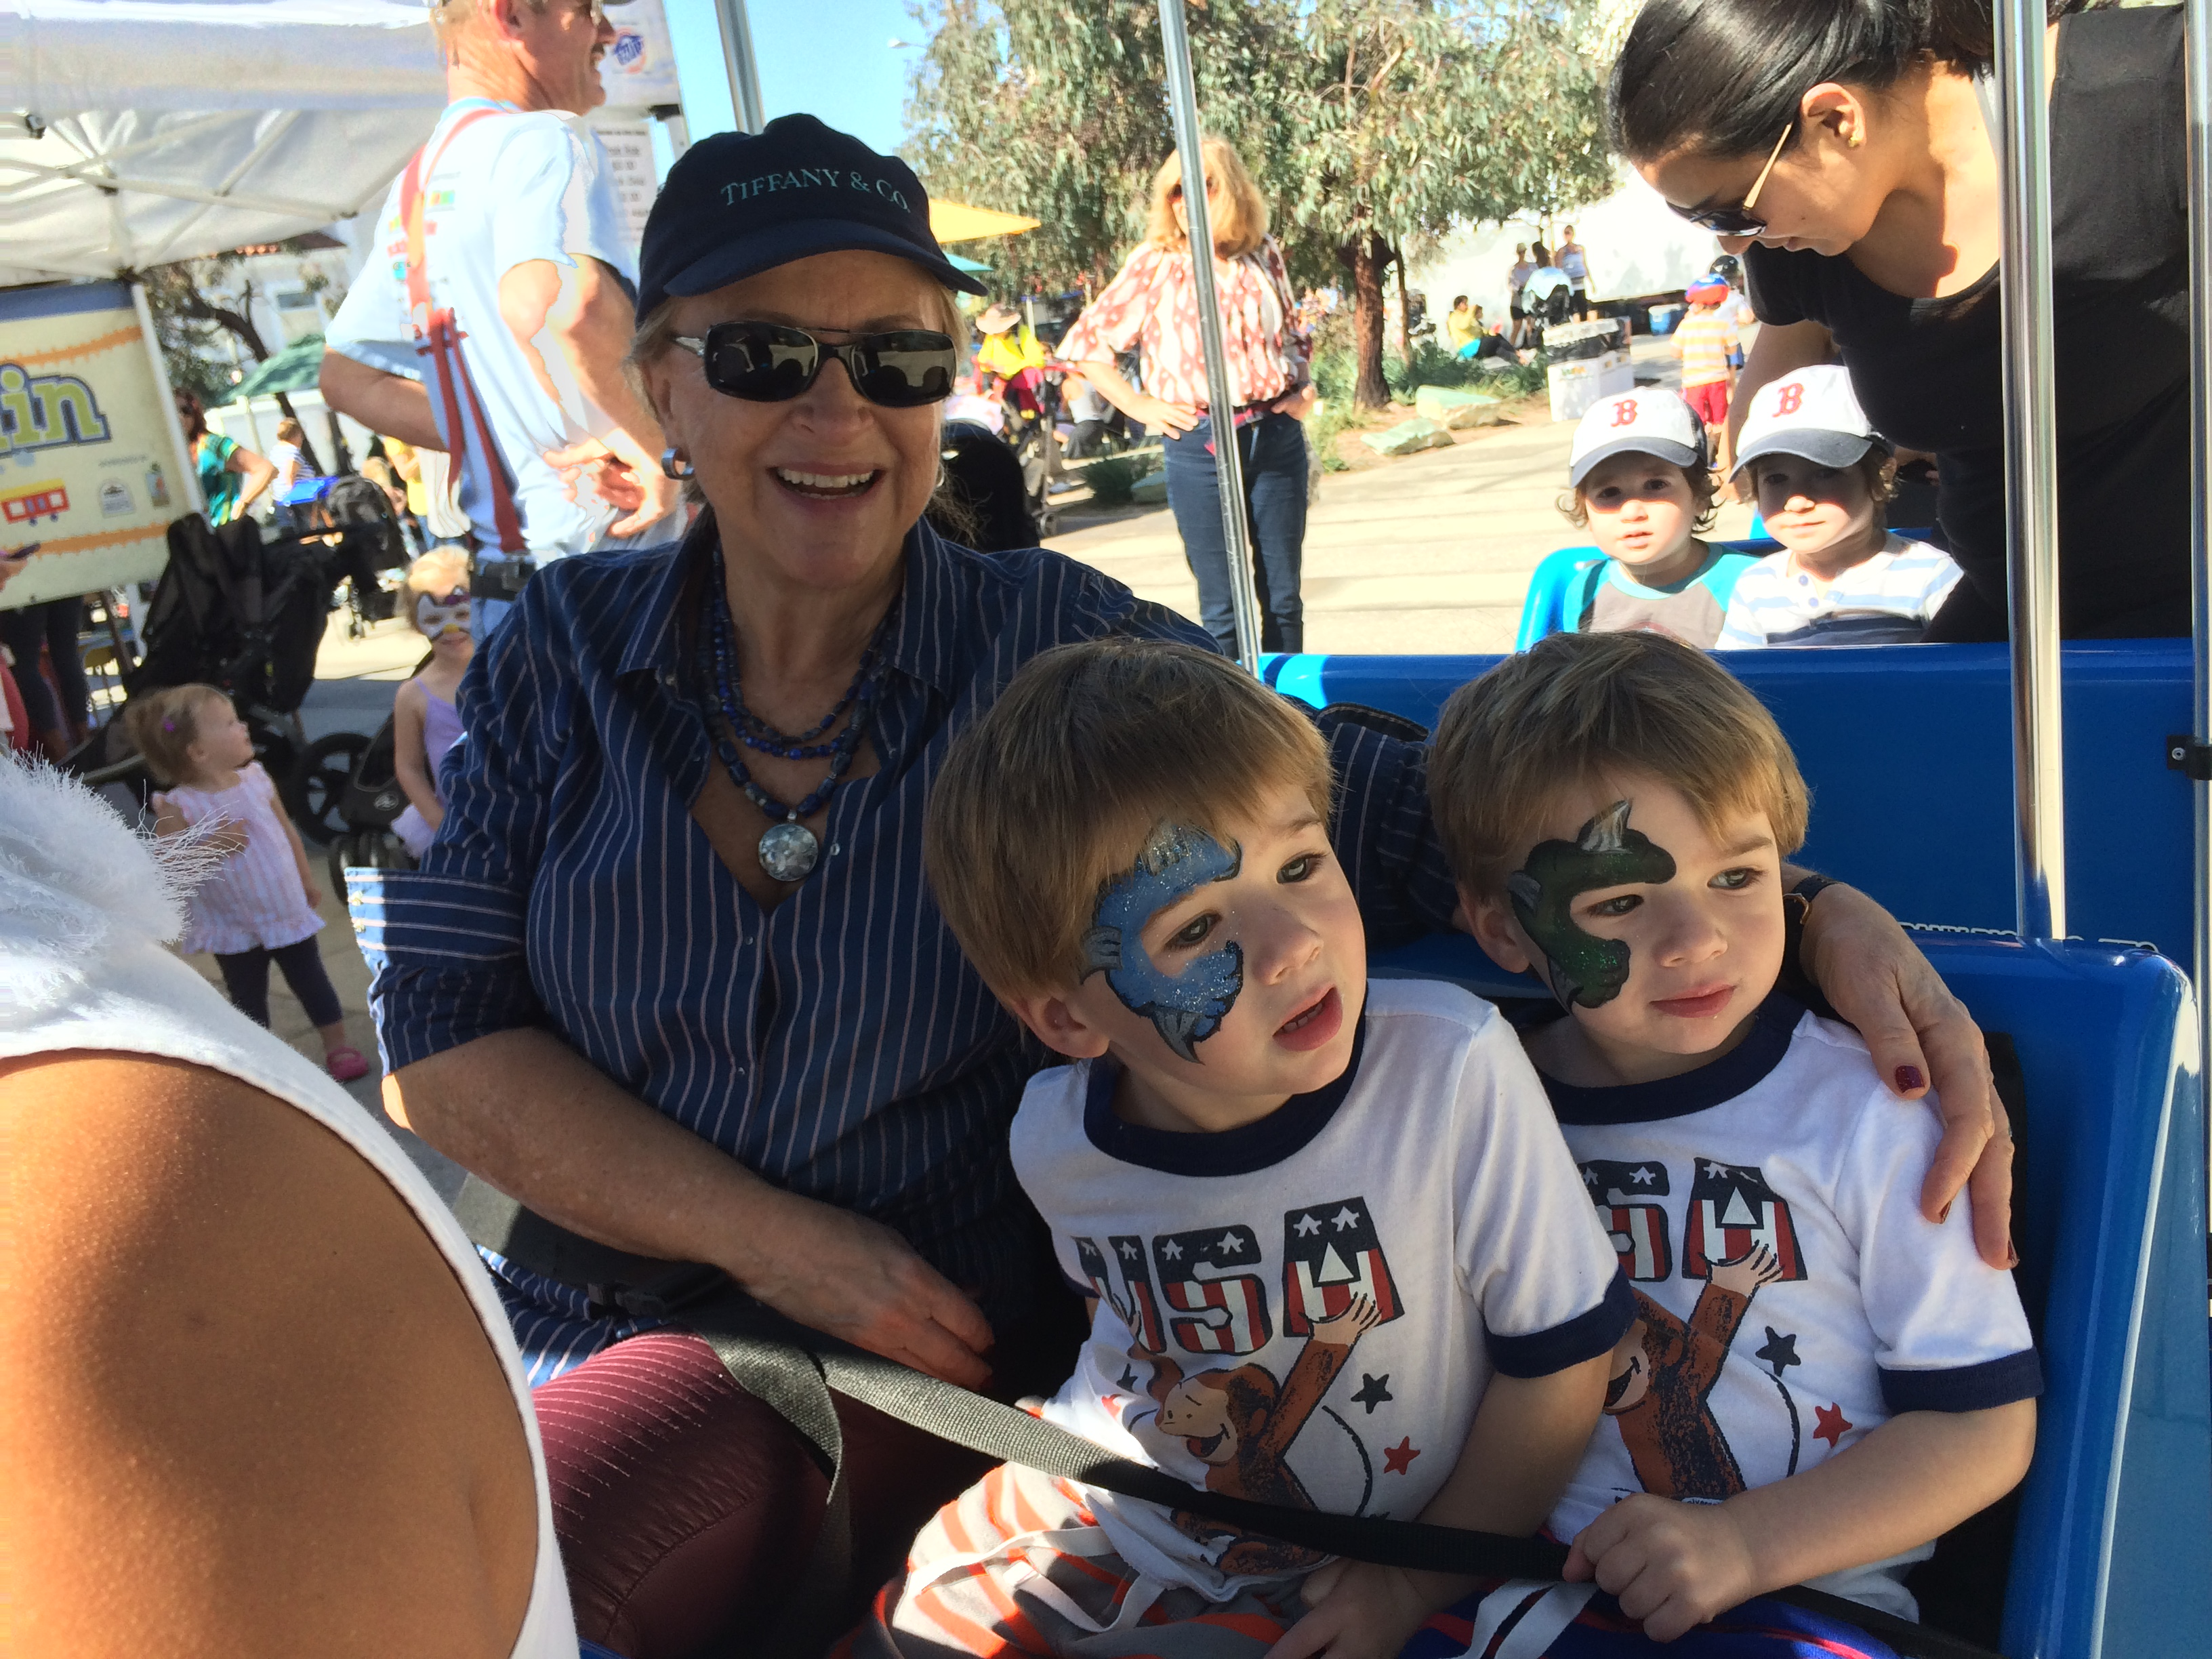 Grandma with twins on train at farmers market Feb 2015